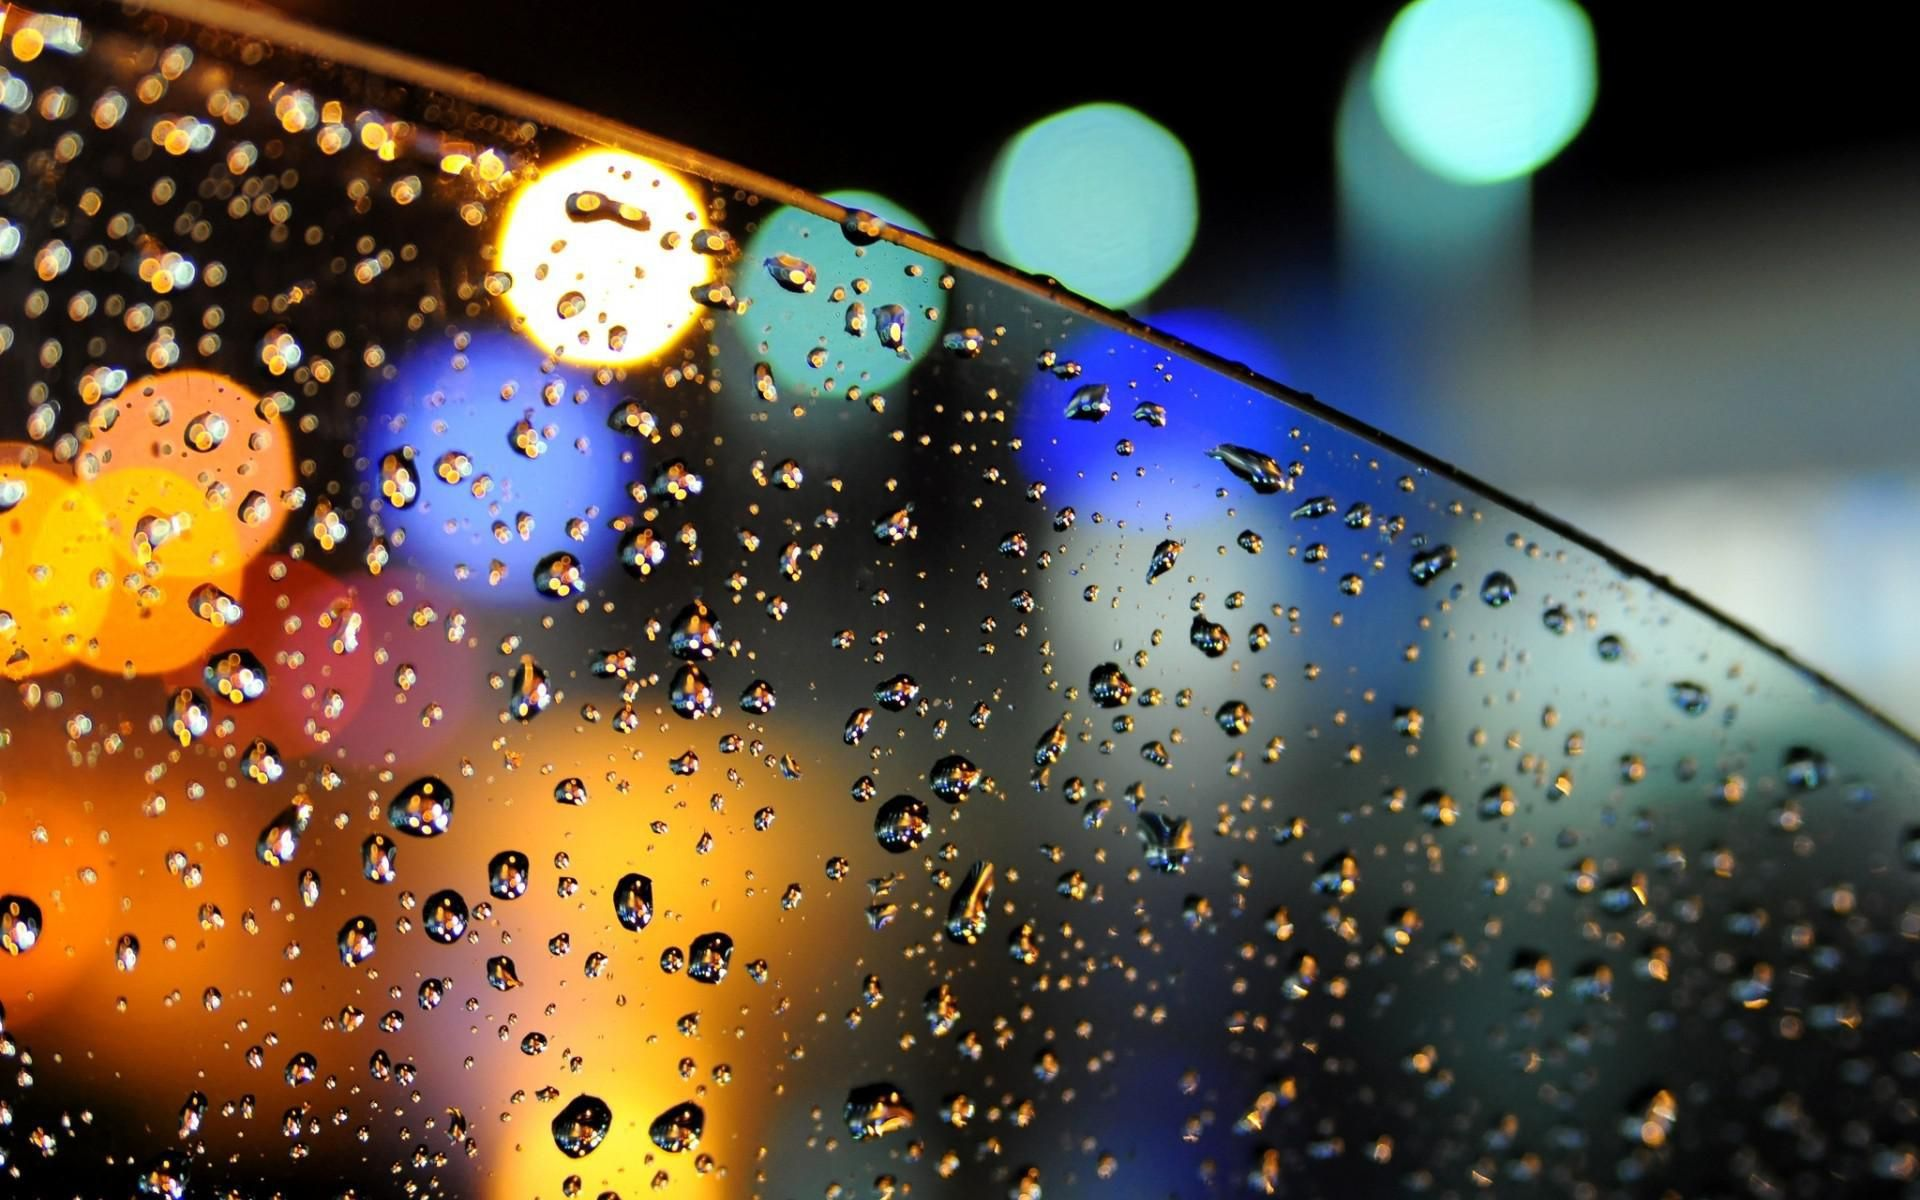 bokeh lights glass car drops water rain wide mobile hd desktop